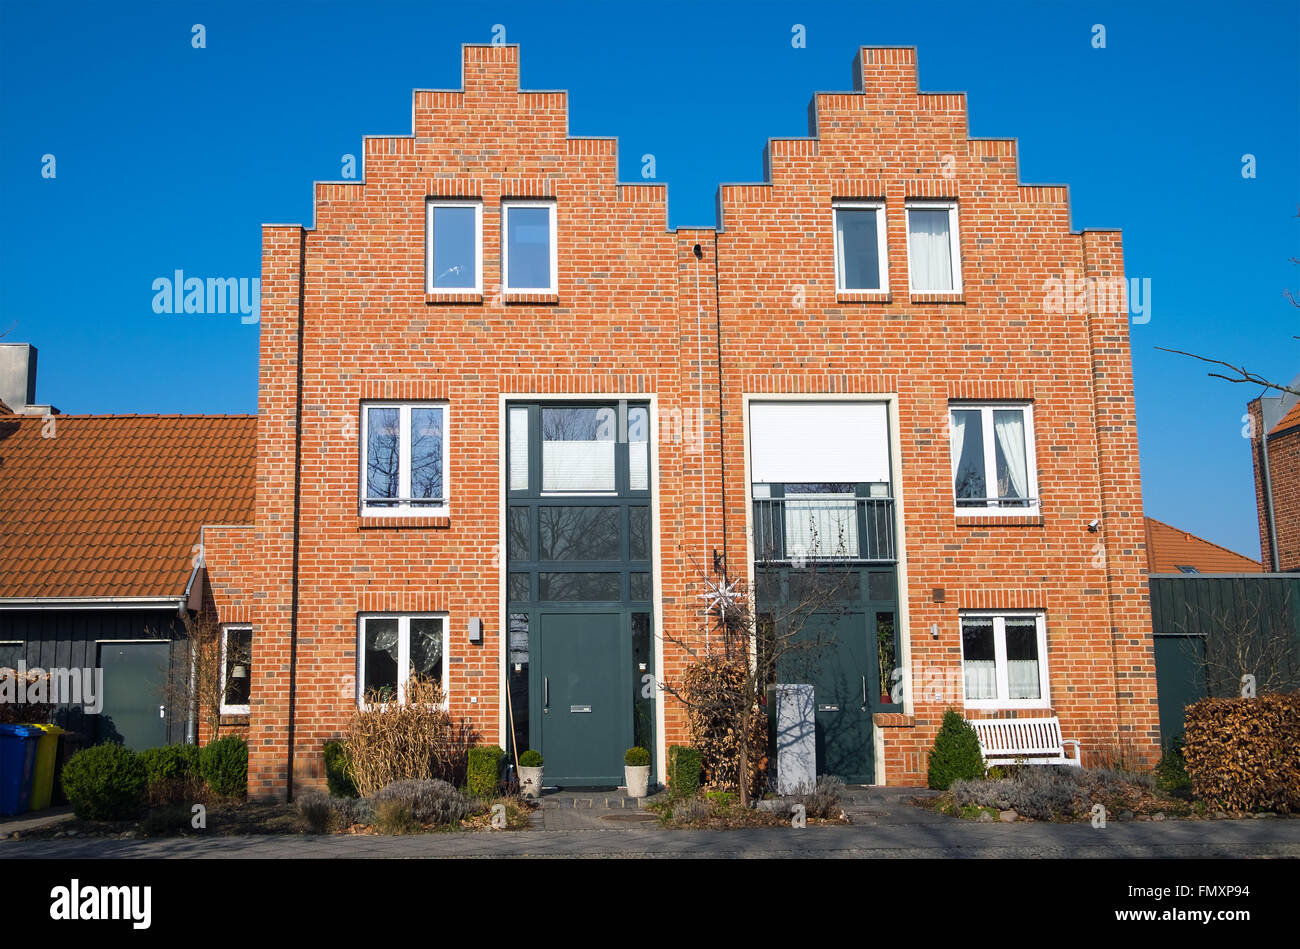 New duplex houses made with red bricks seen in Germany - Stock Image